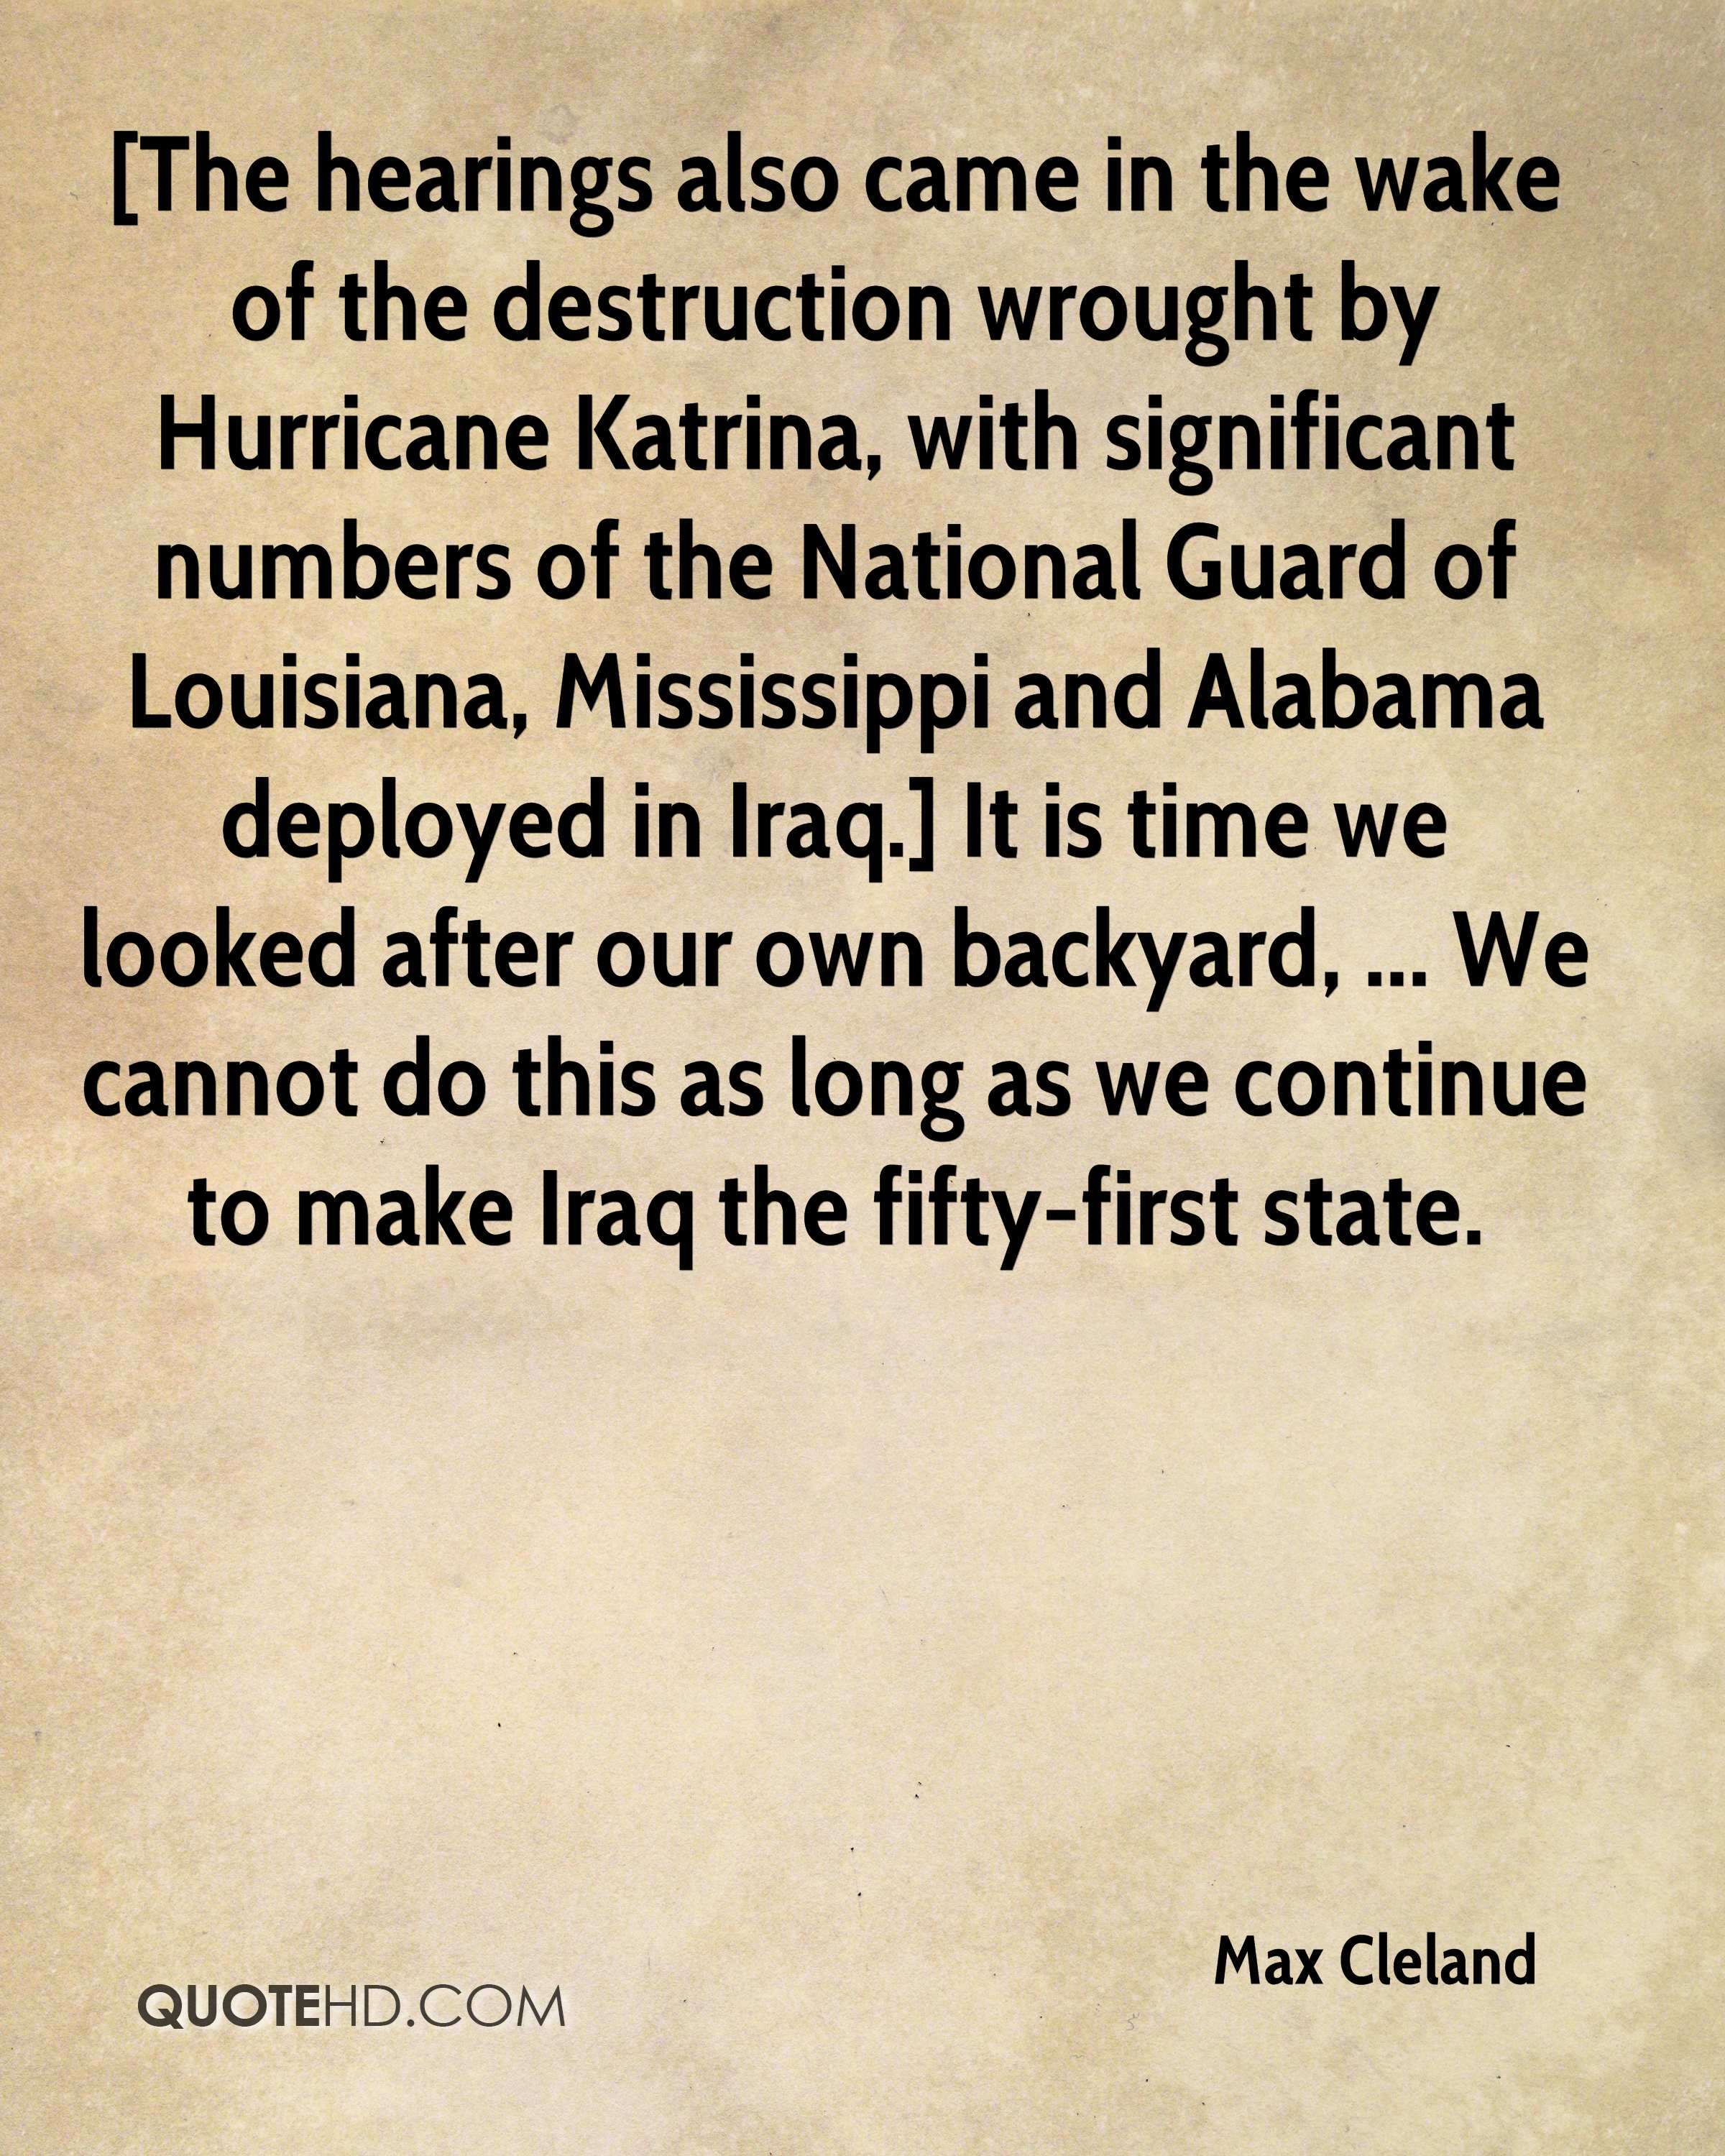 [The hearings also came in the wake of the destruction wrought by Hurricane Katrina, with significant numbers of the National Guard of Louisiana, Mississippi and Alabama deployed in Iraq.] It is time we looked after our own backyard, ... We cannot do this as long as we continue to make Iraq the fifty-first state.